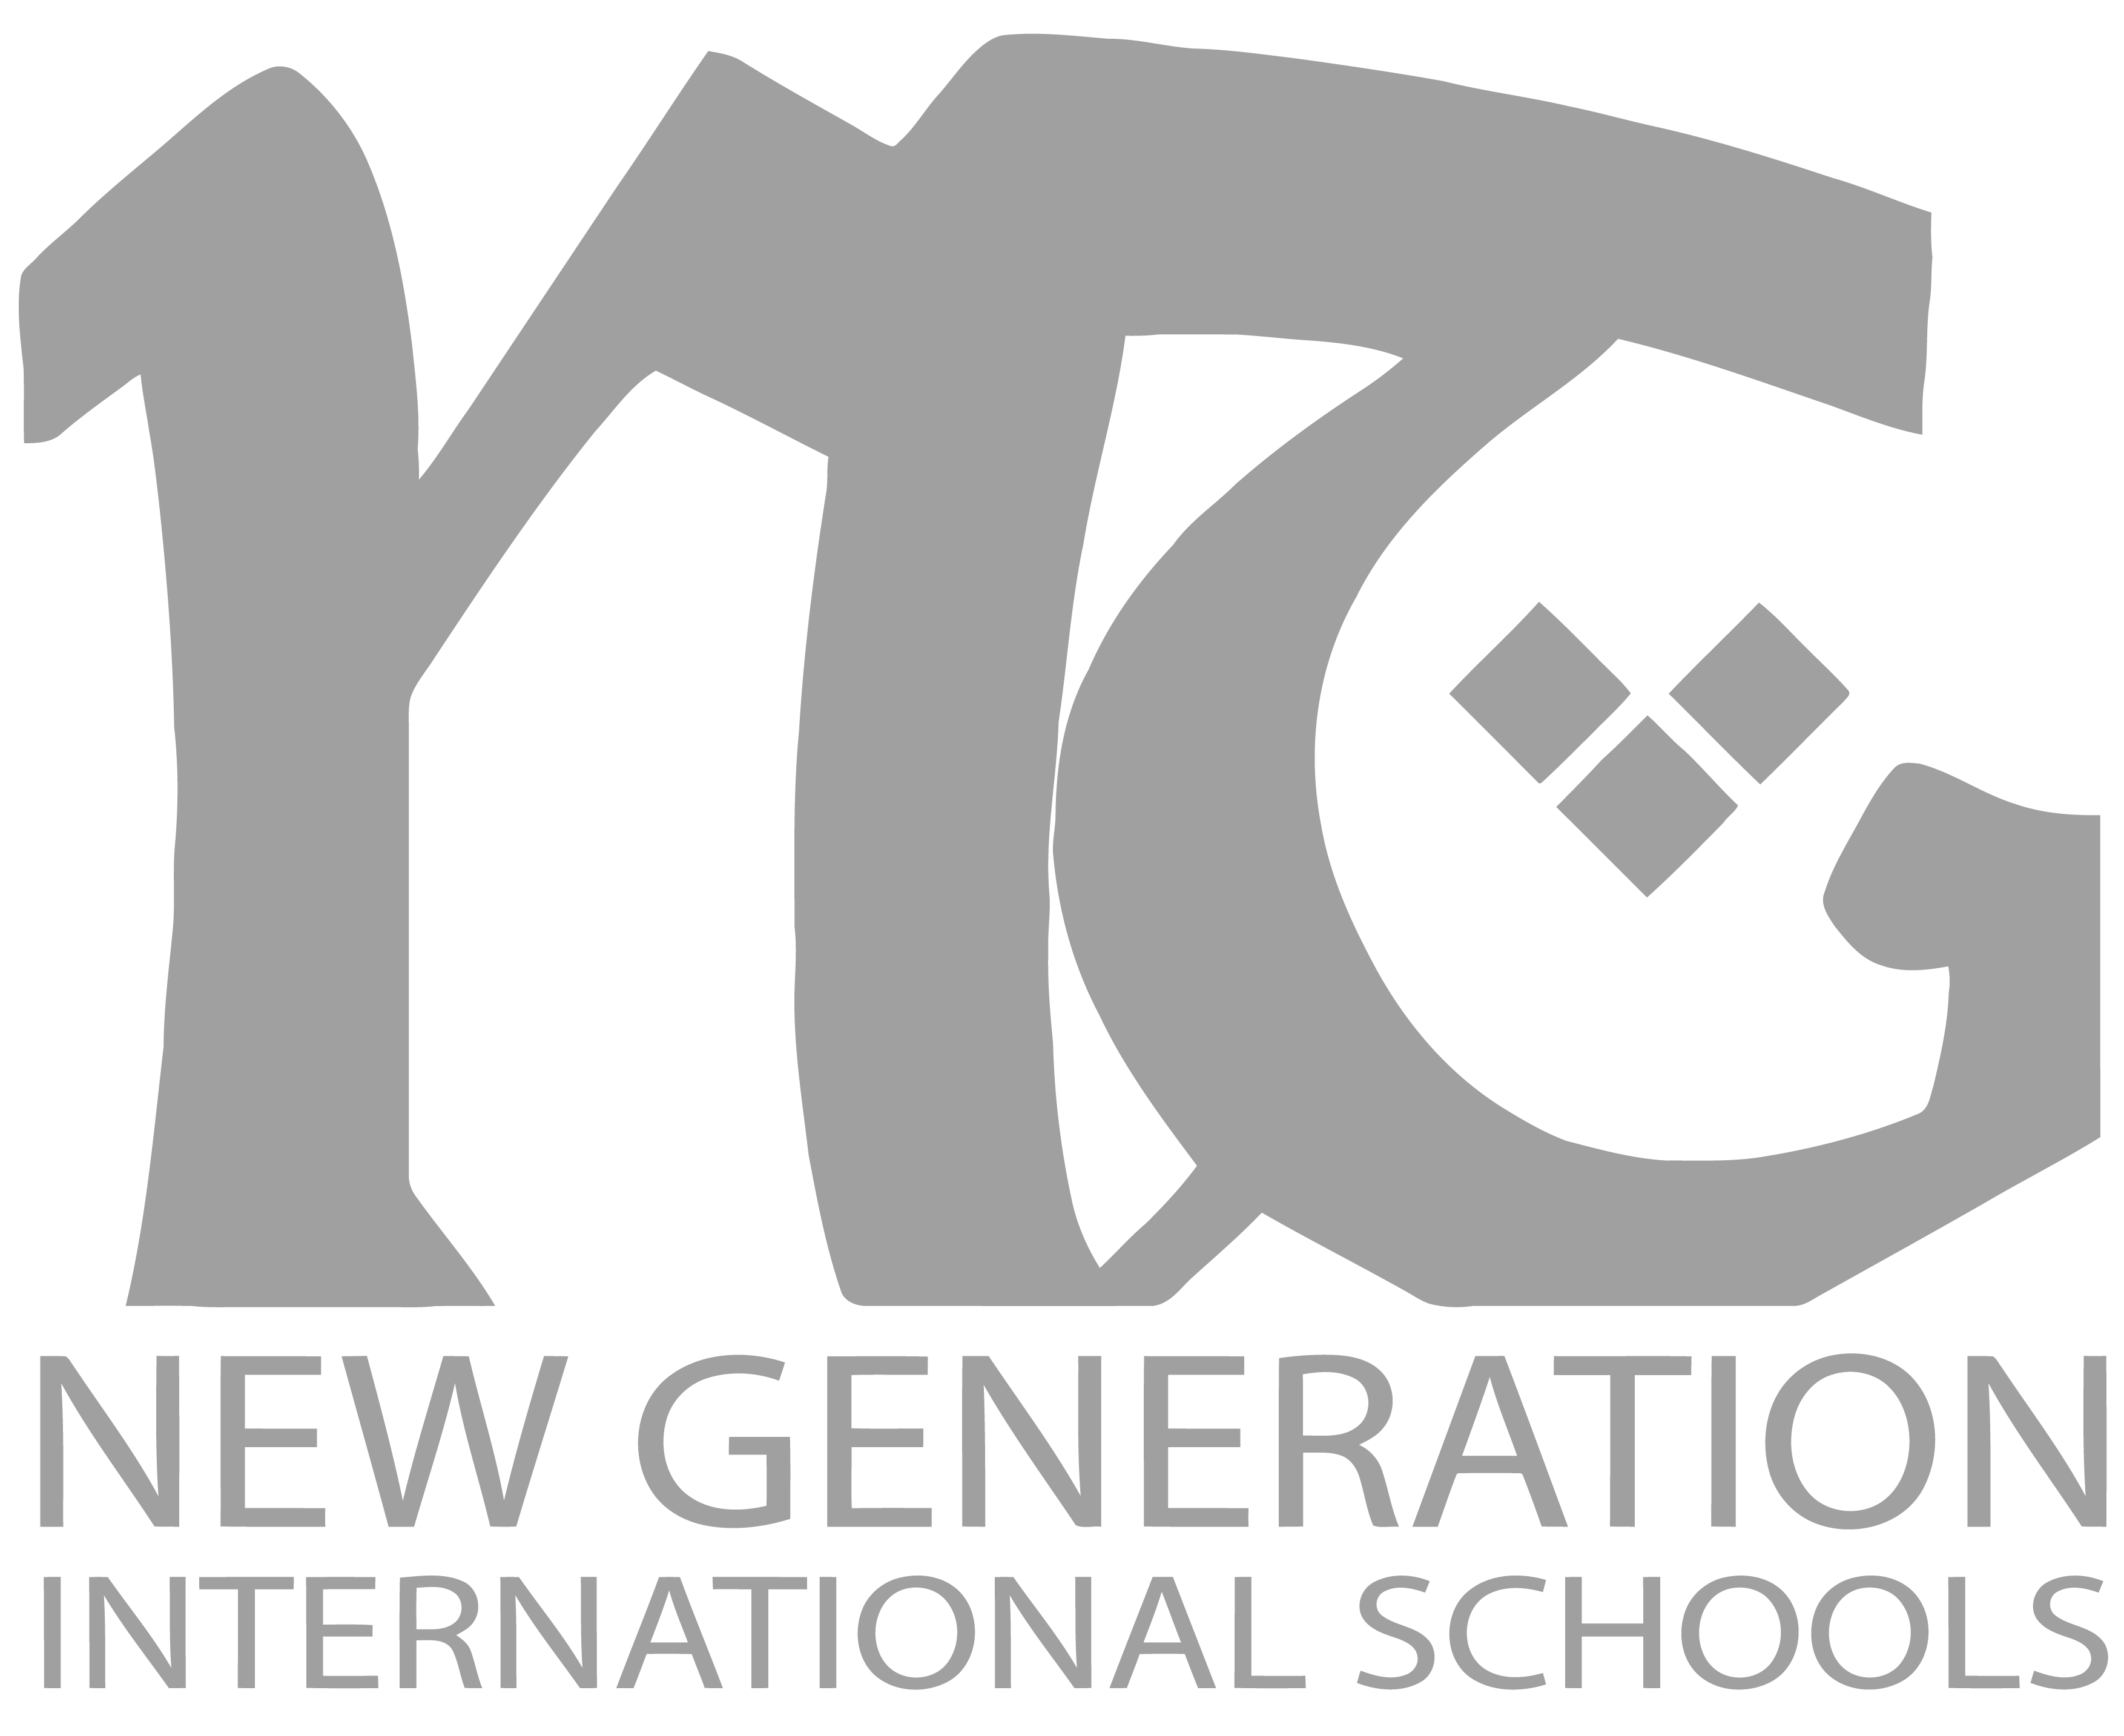 New generation international schools. Mission clipart foreign